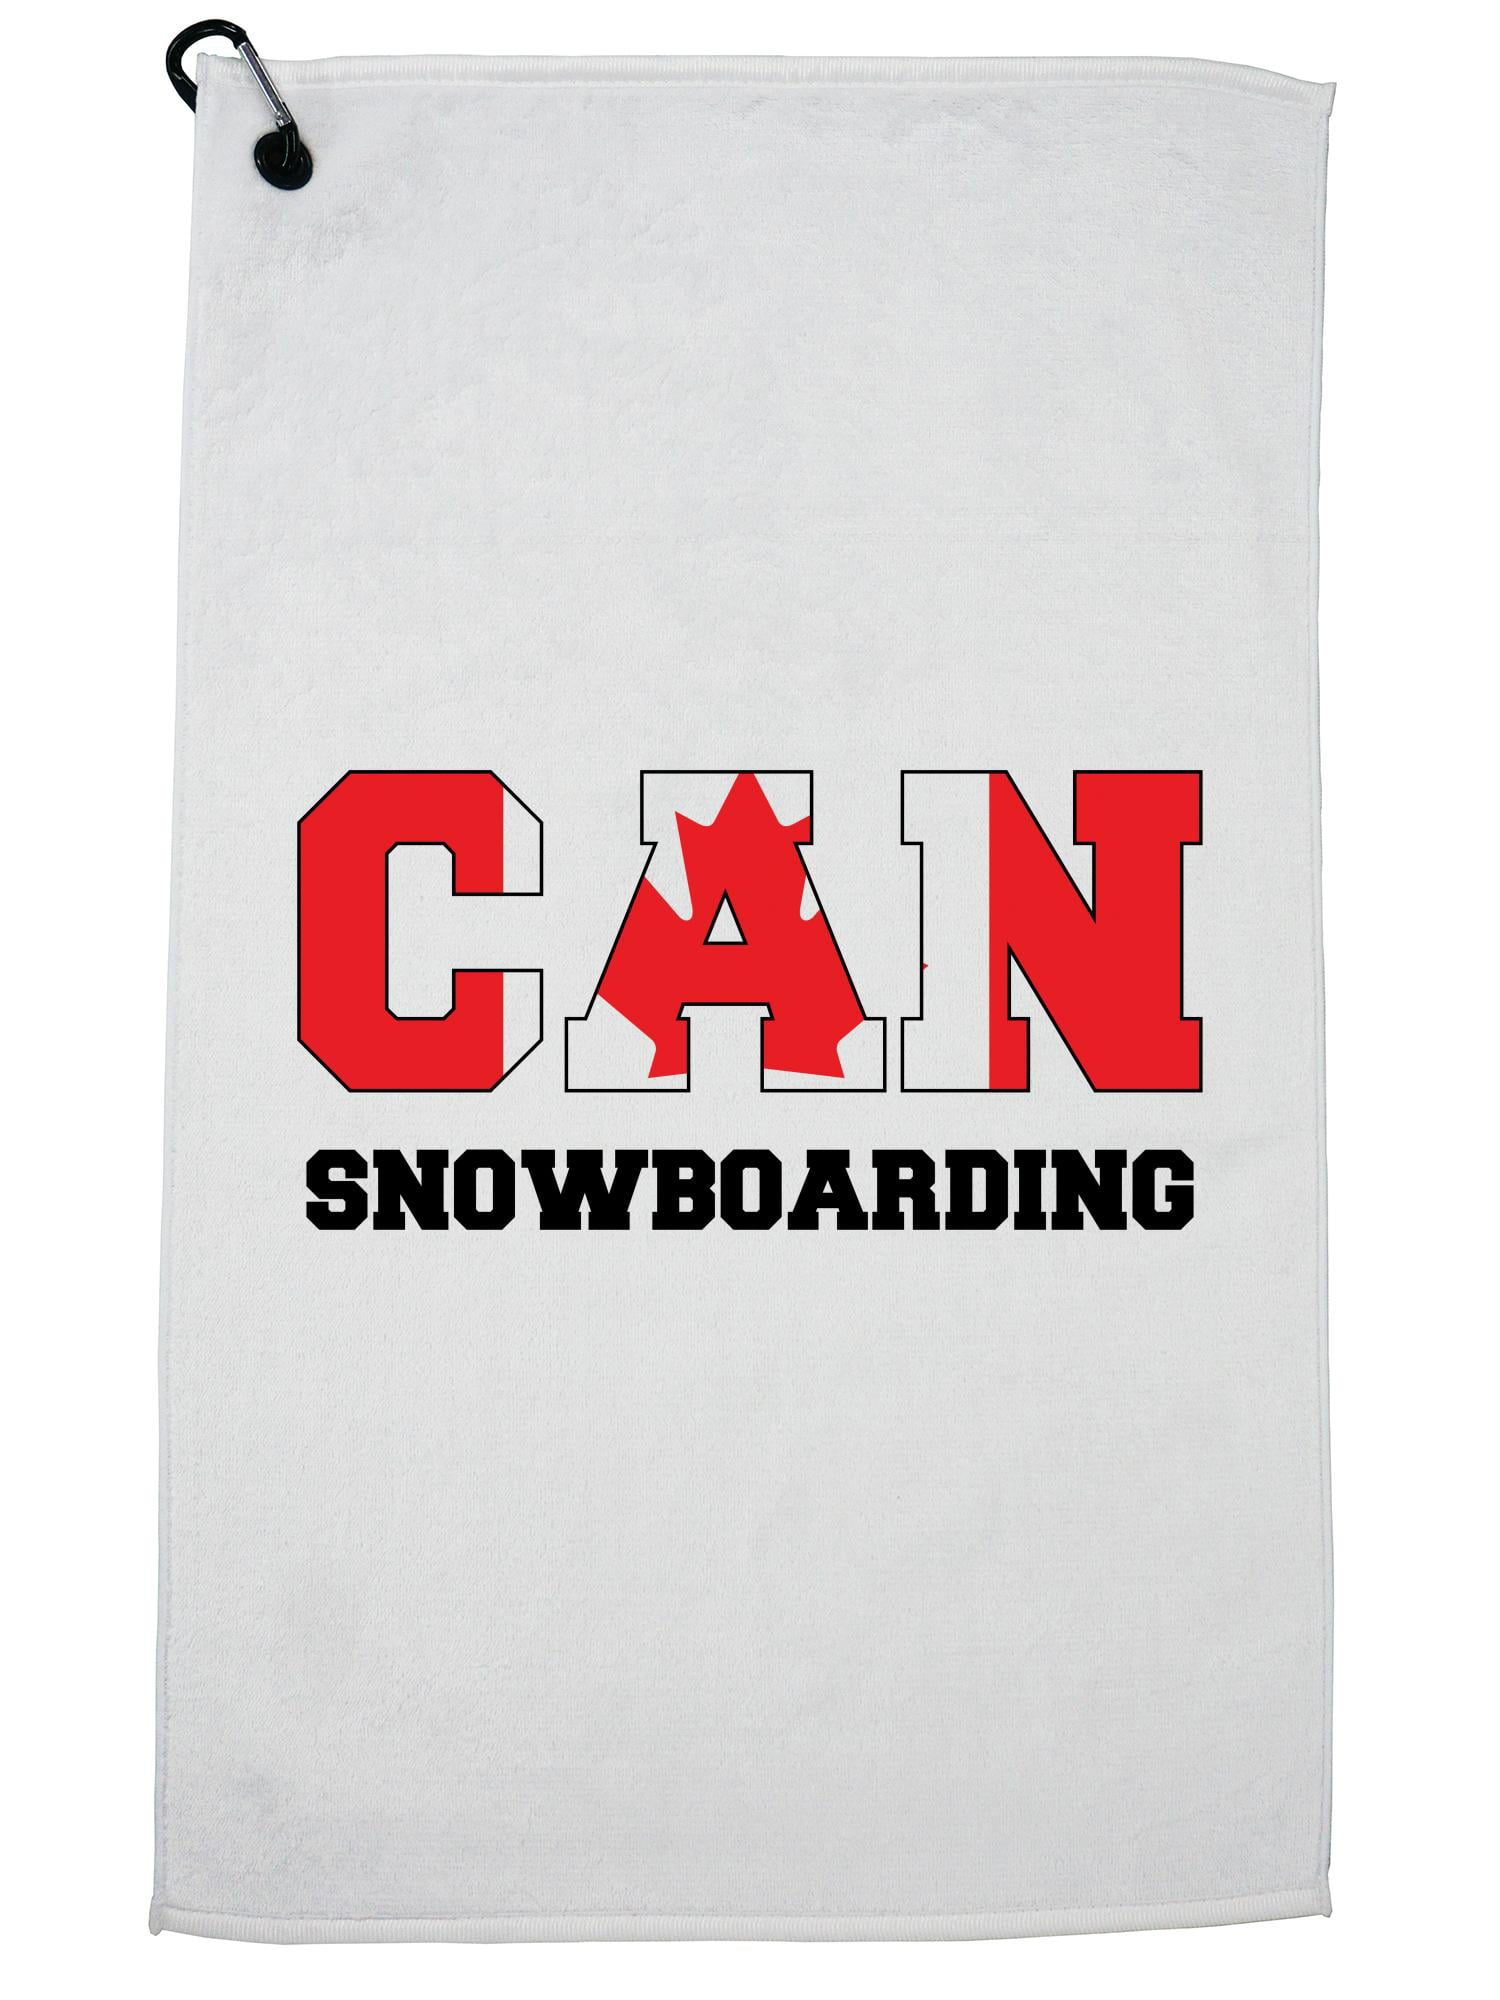 Canada Snowboarding Winter Olympic Korea CAN Flag Golf Towel with Carabiner Clip by Hollywood Thread